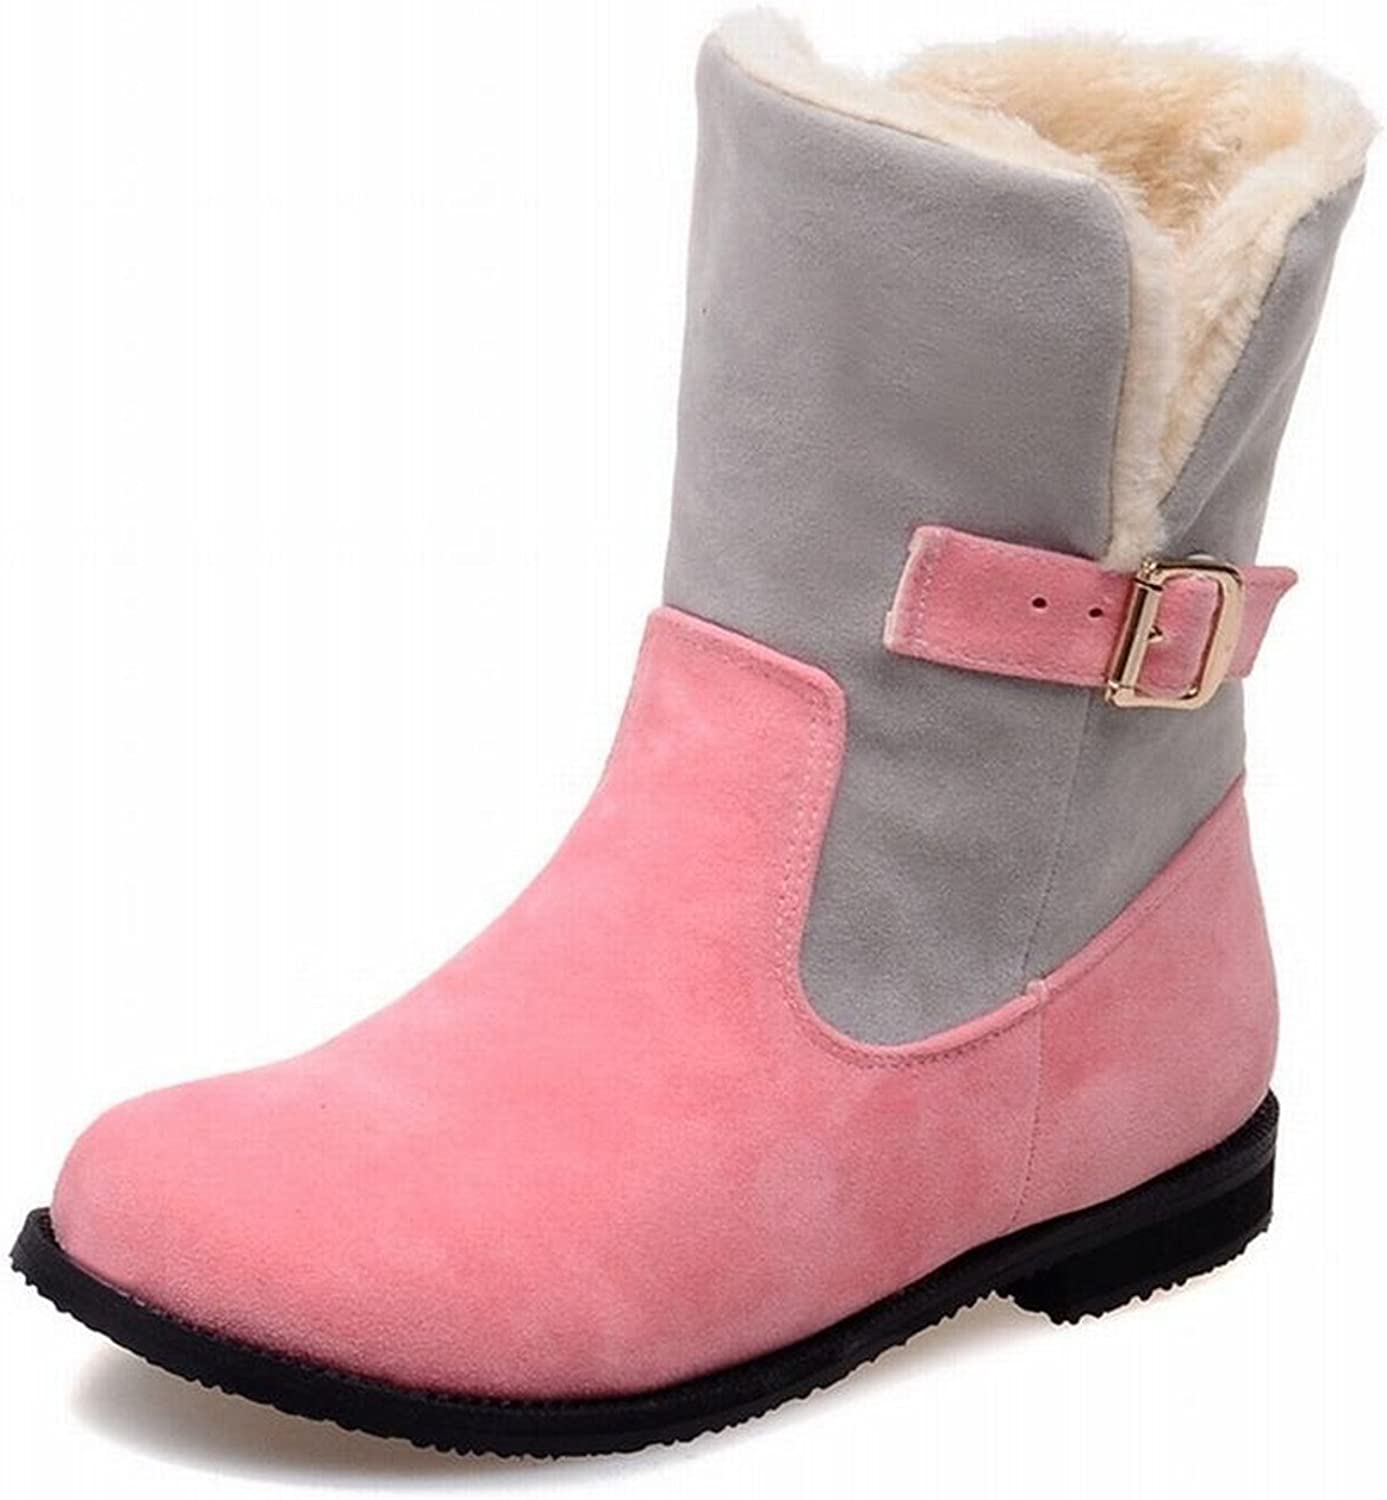 Jean Sche Sweat Women's Buckle Assorted colors Winter Fashion Warm Low Heel Snow Boots